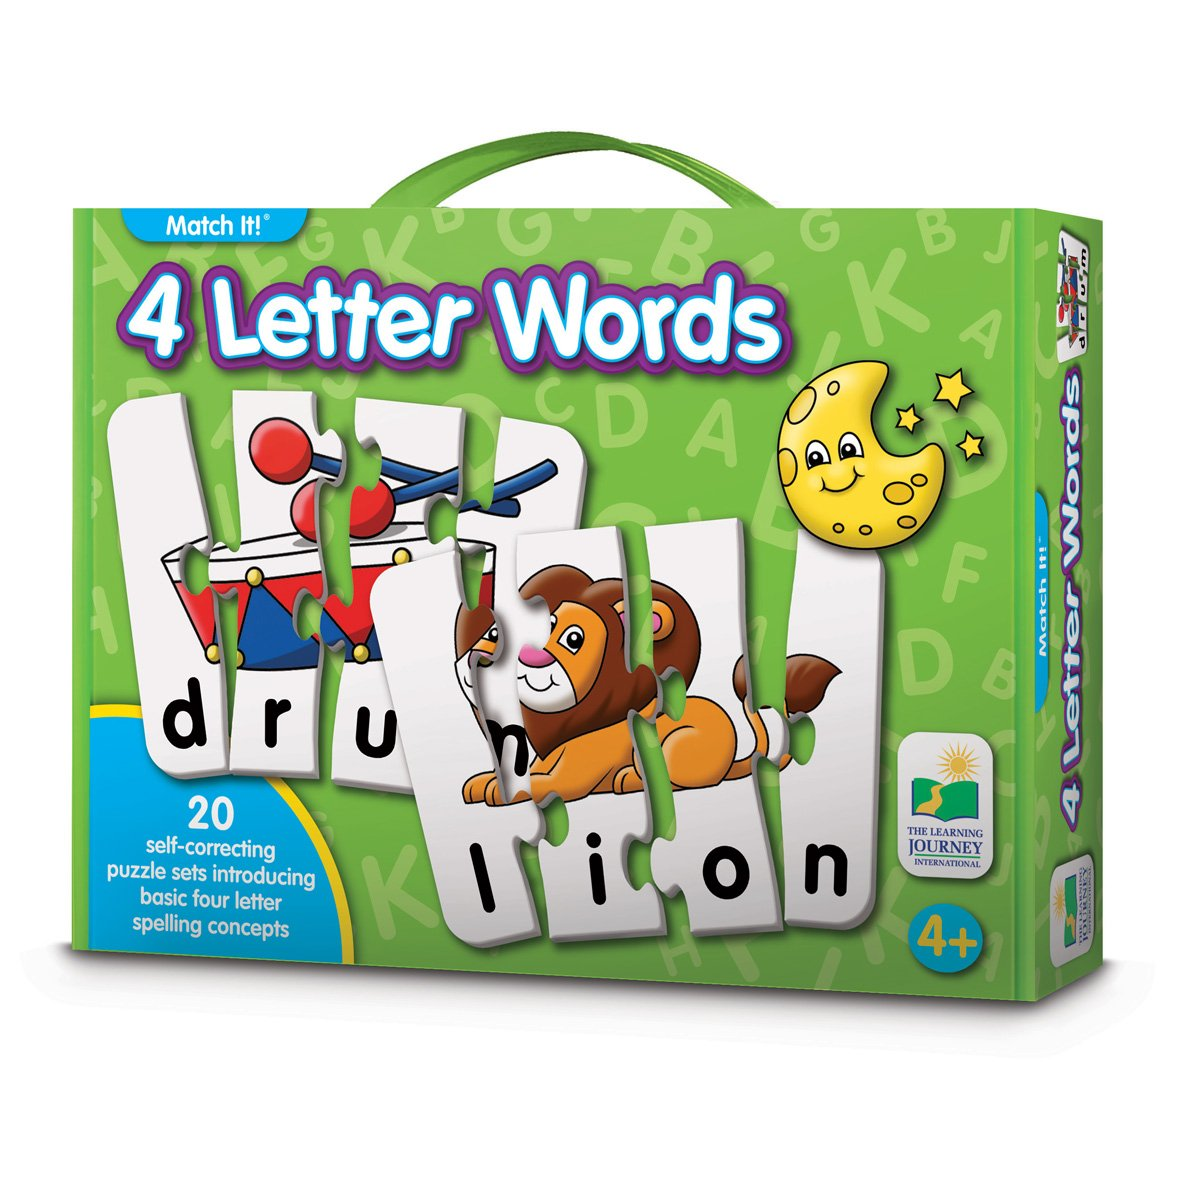 Image result for four letter word cartoon